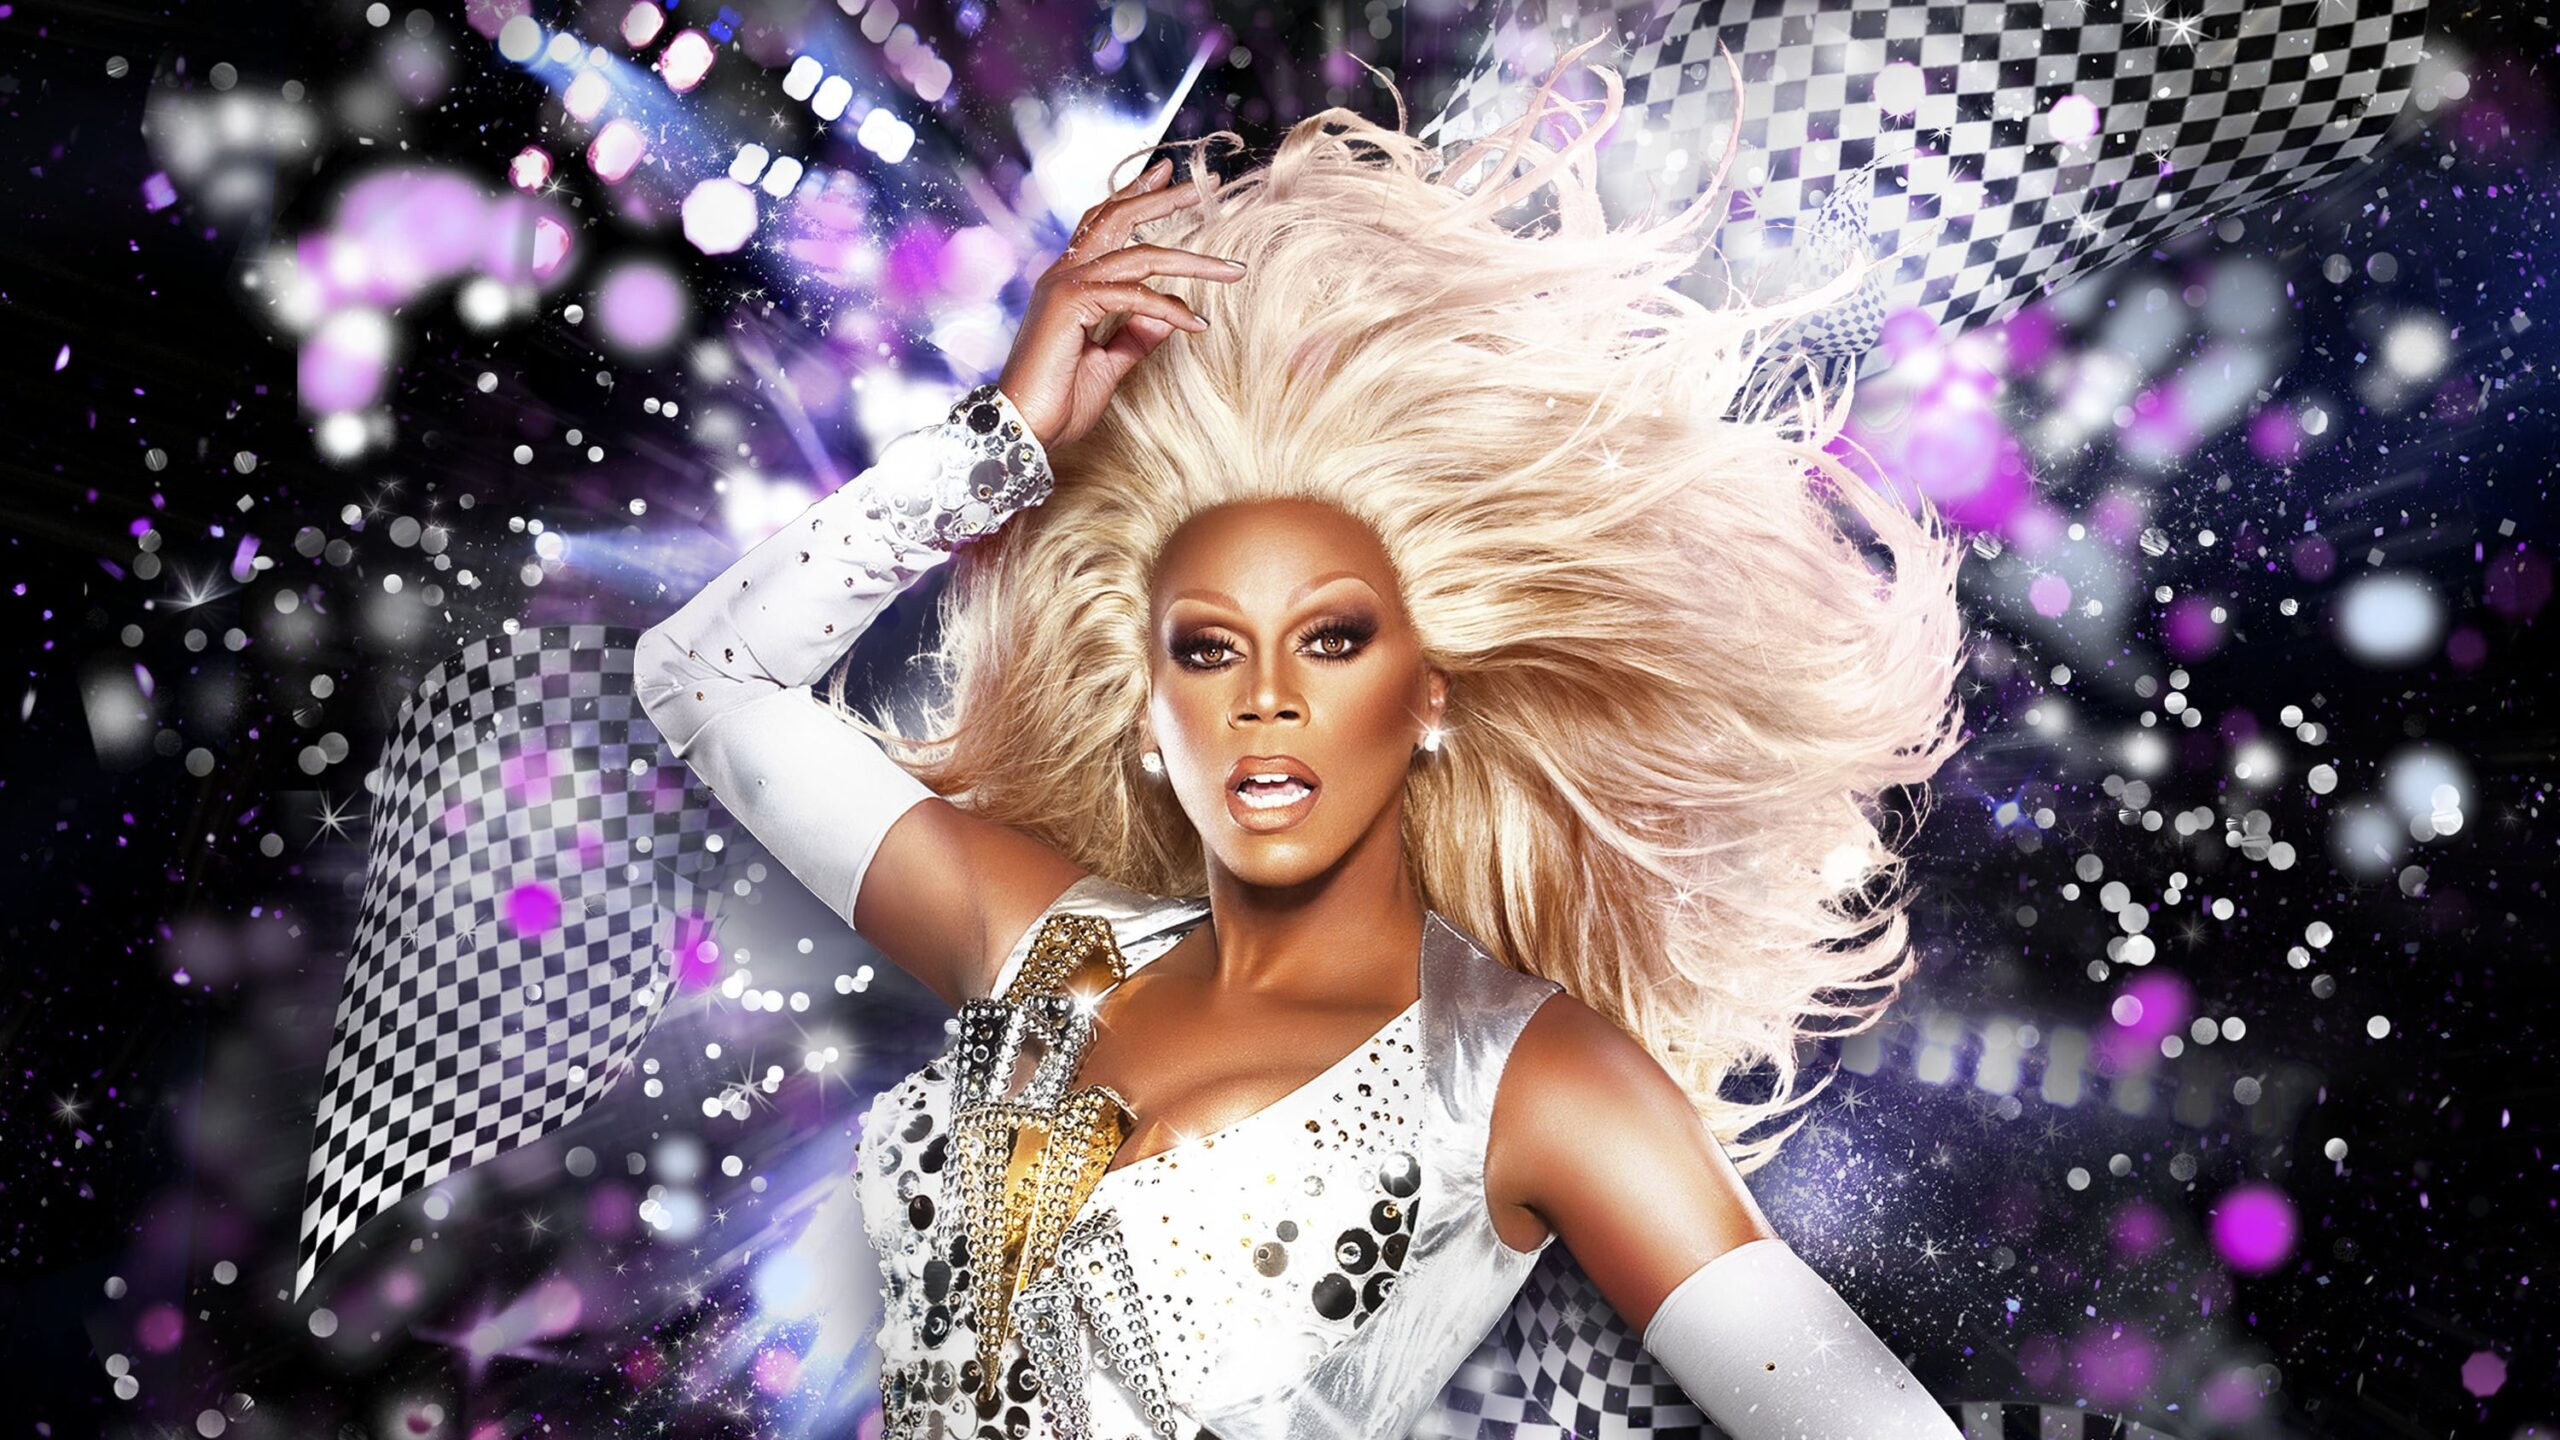 RuPaul's Drag Race Season 13 Episode 5 Releases